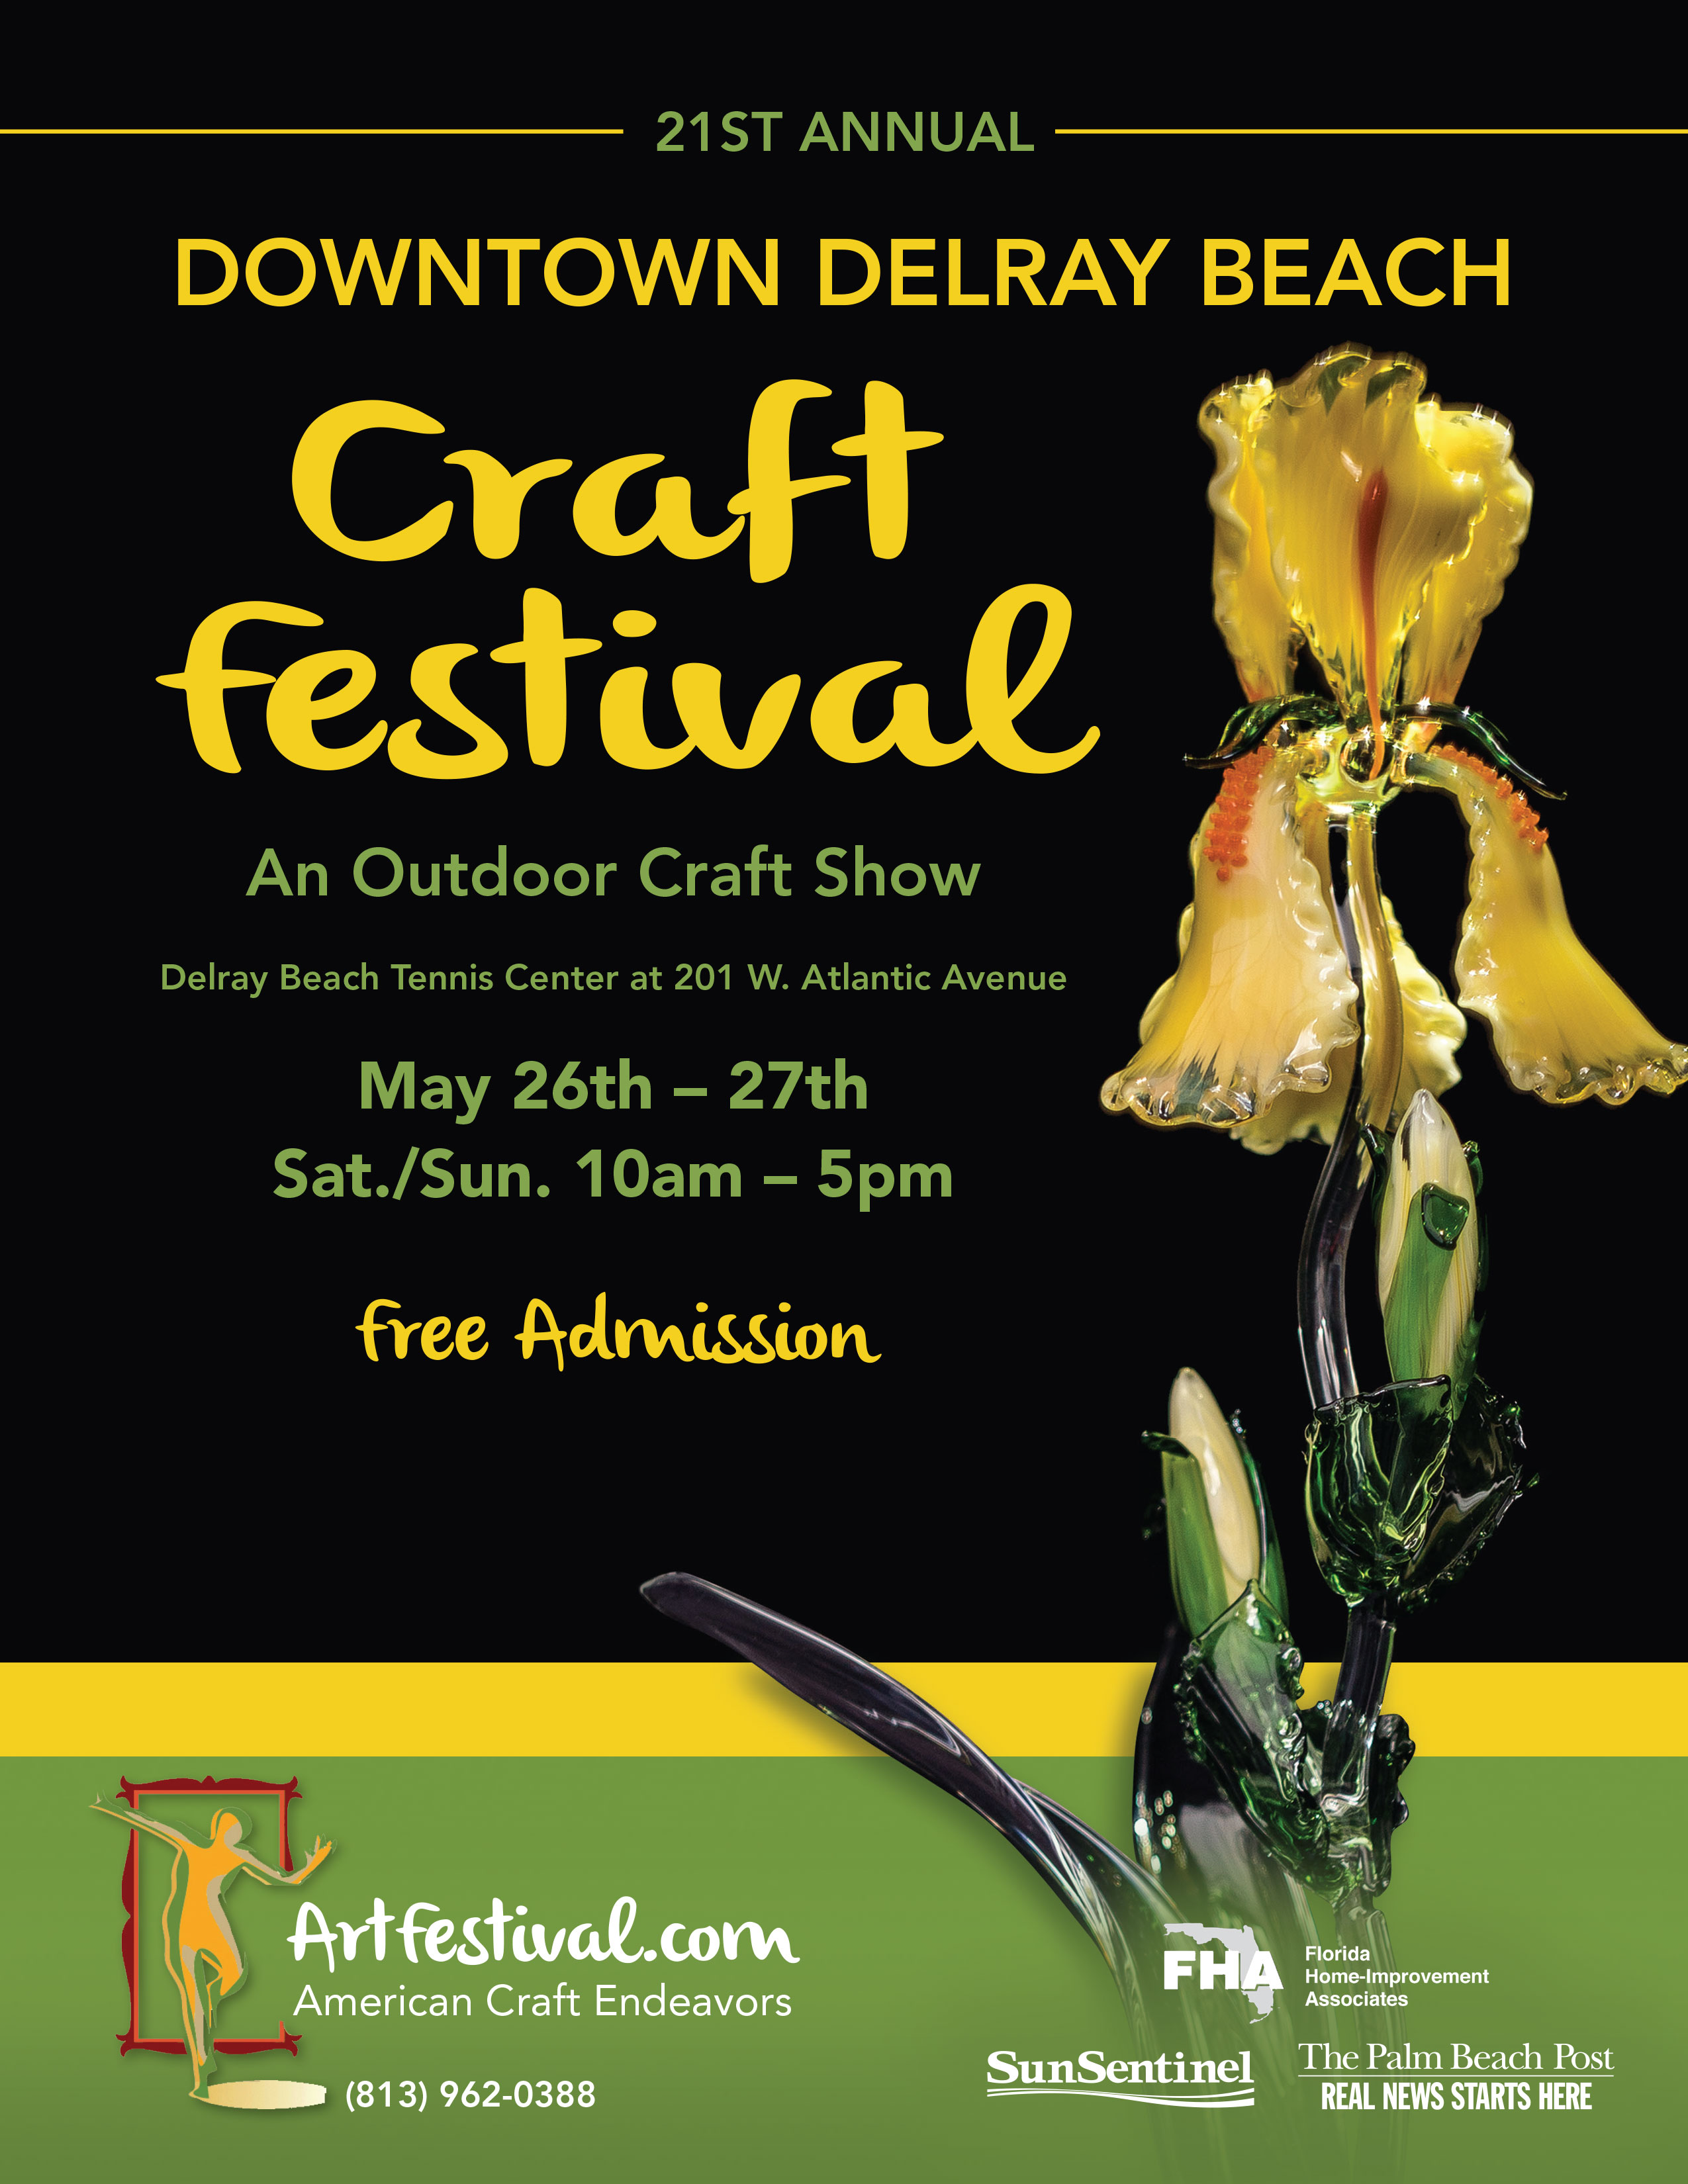 21st Annual Downtown Delray Beach Craft Festival